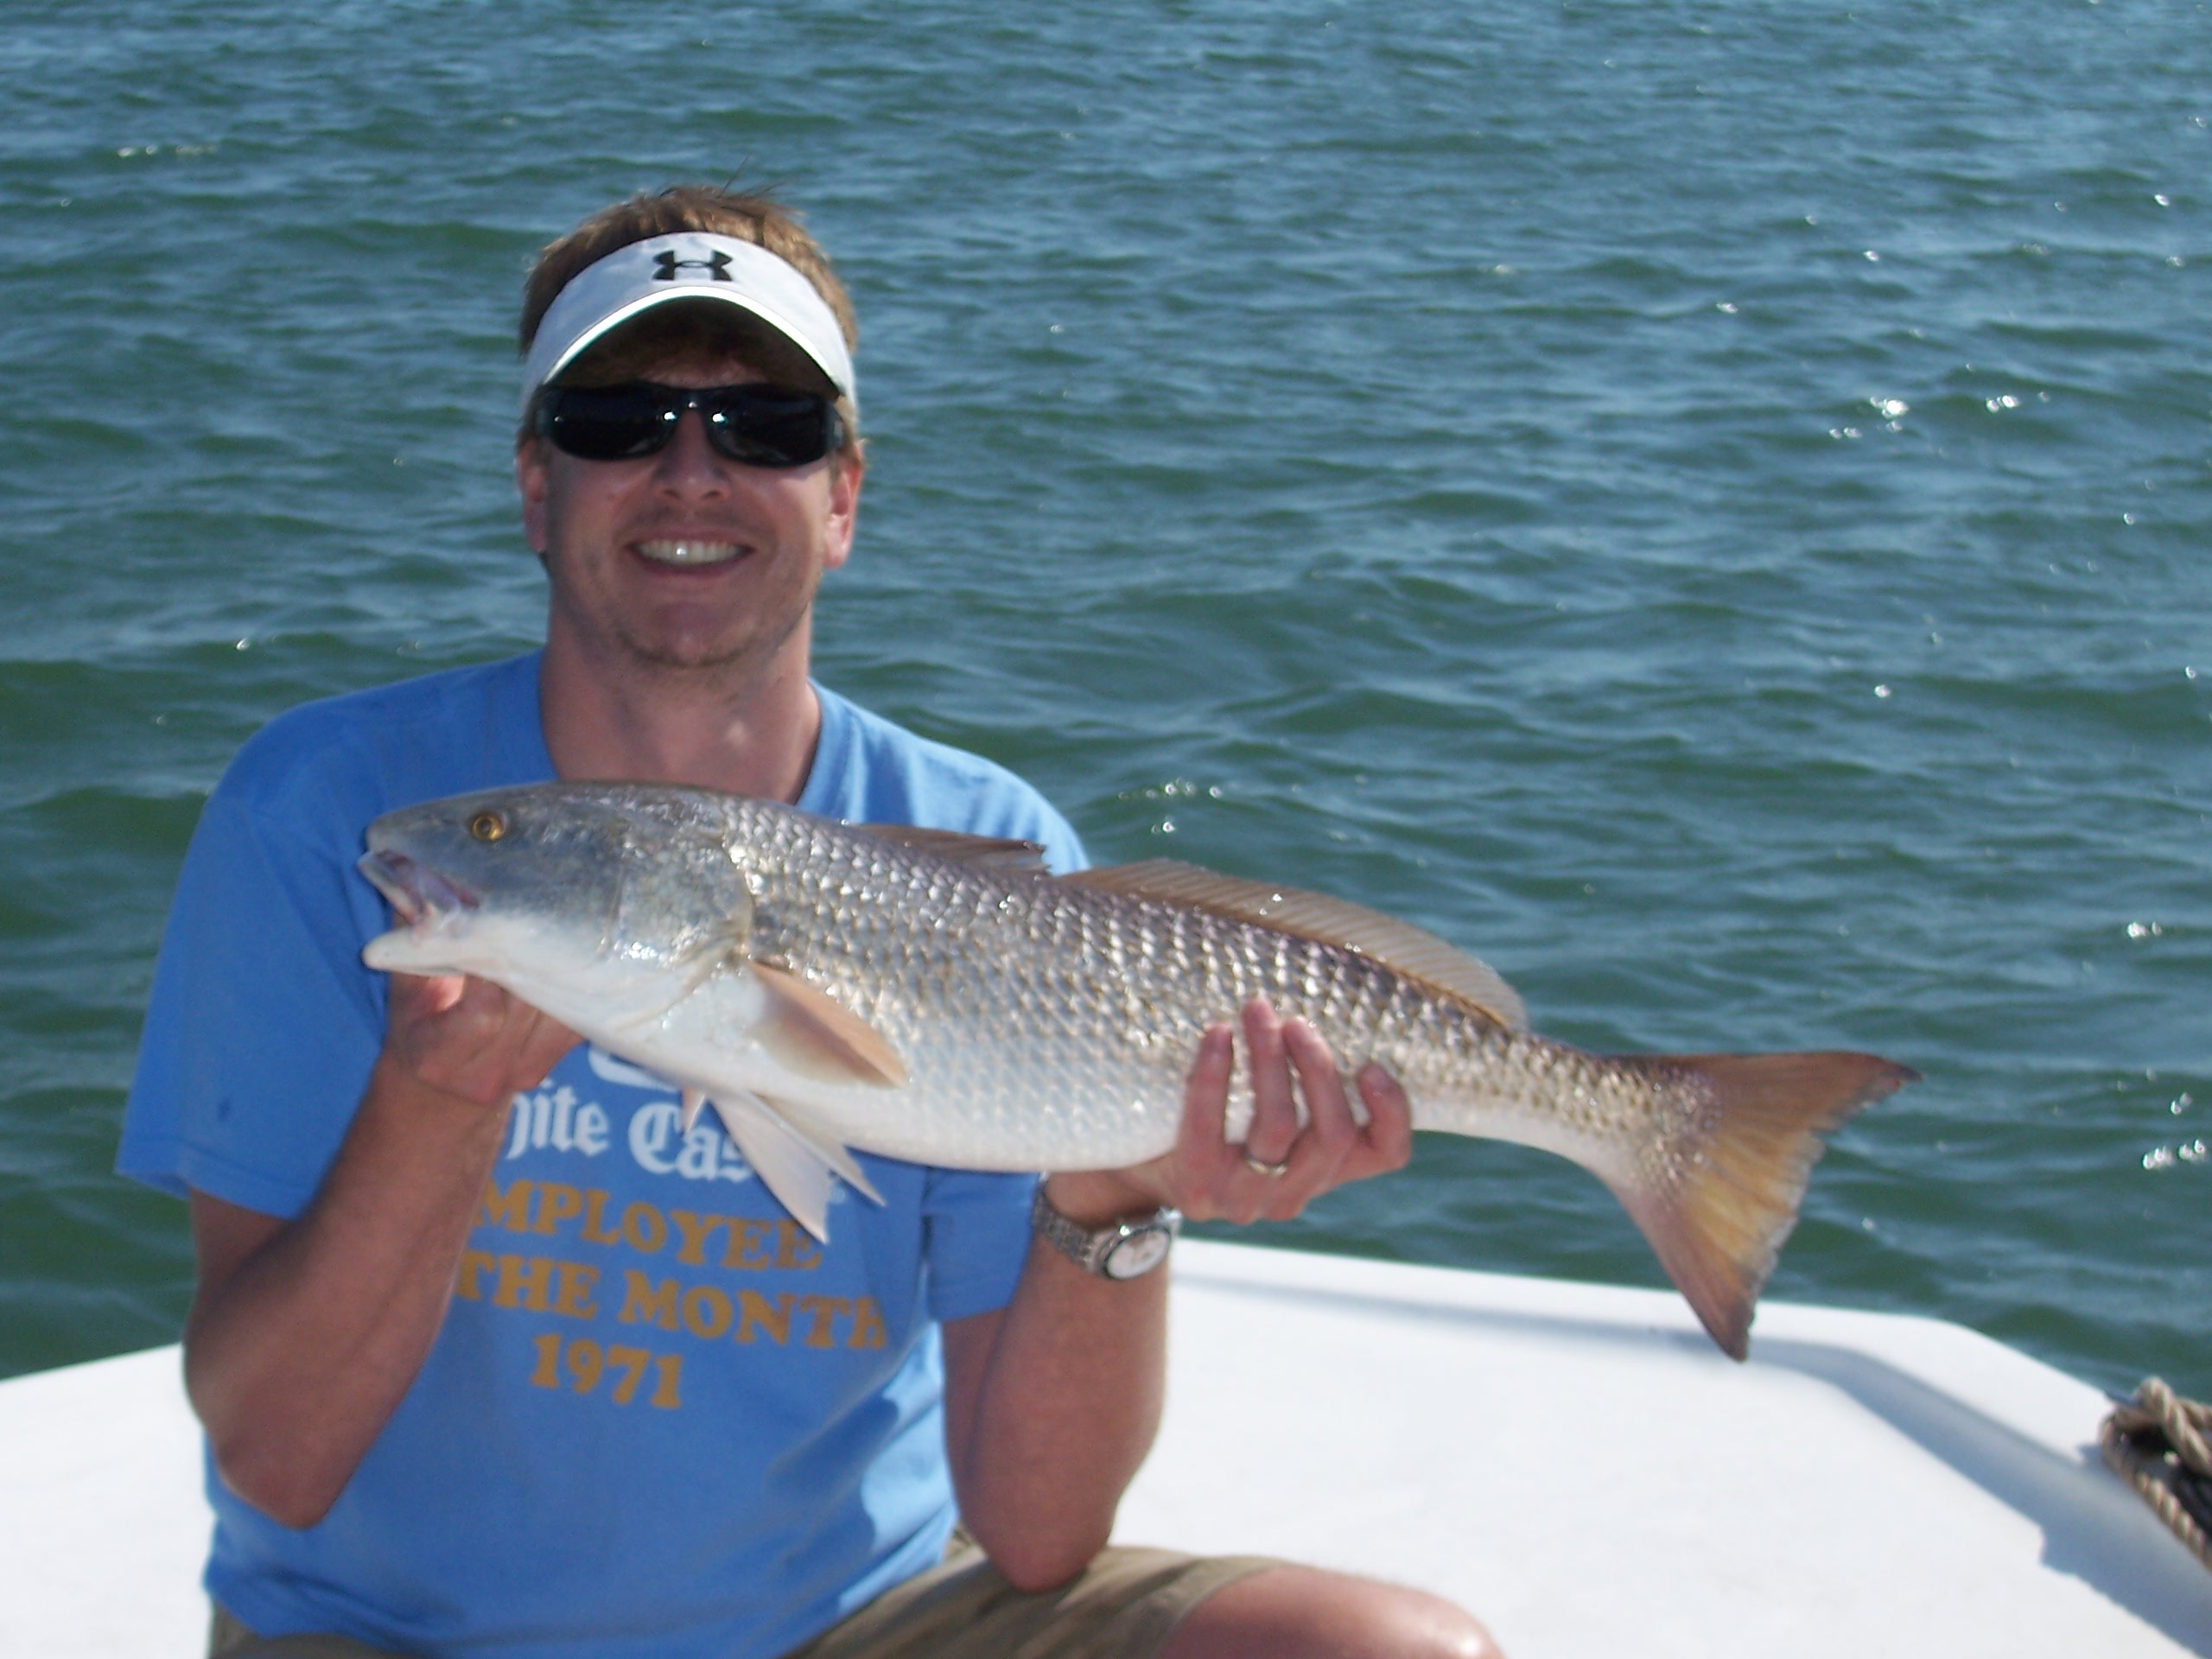 Sarasota florida fishing report rodbender fishing for Sarasota fishing charters